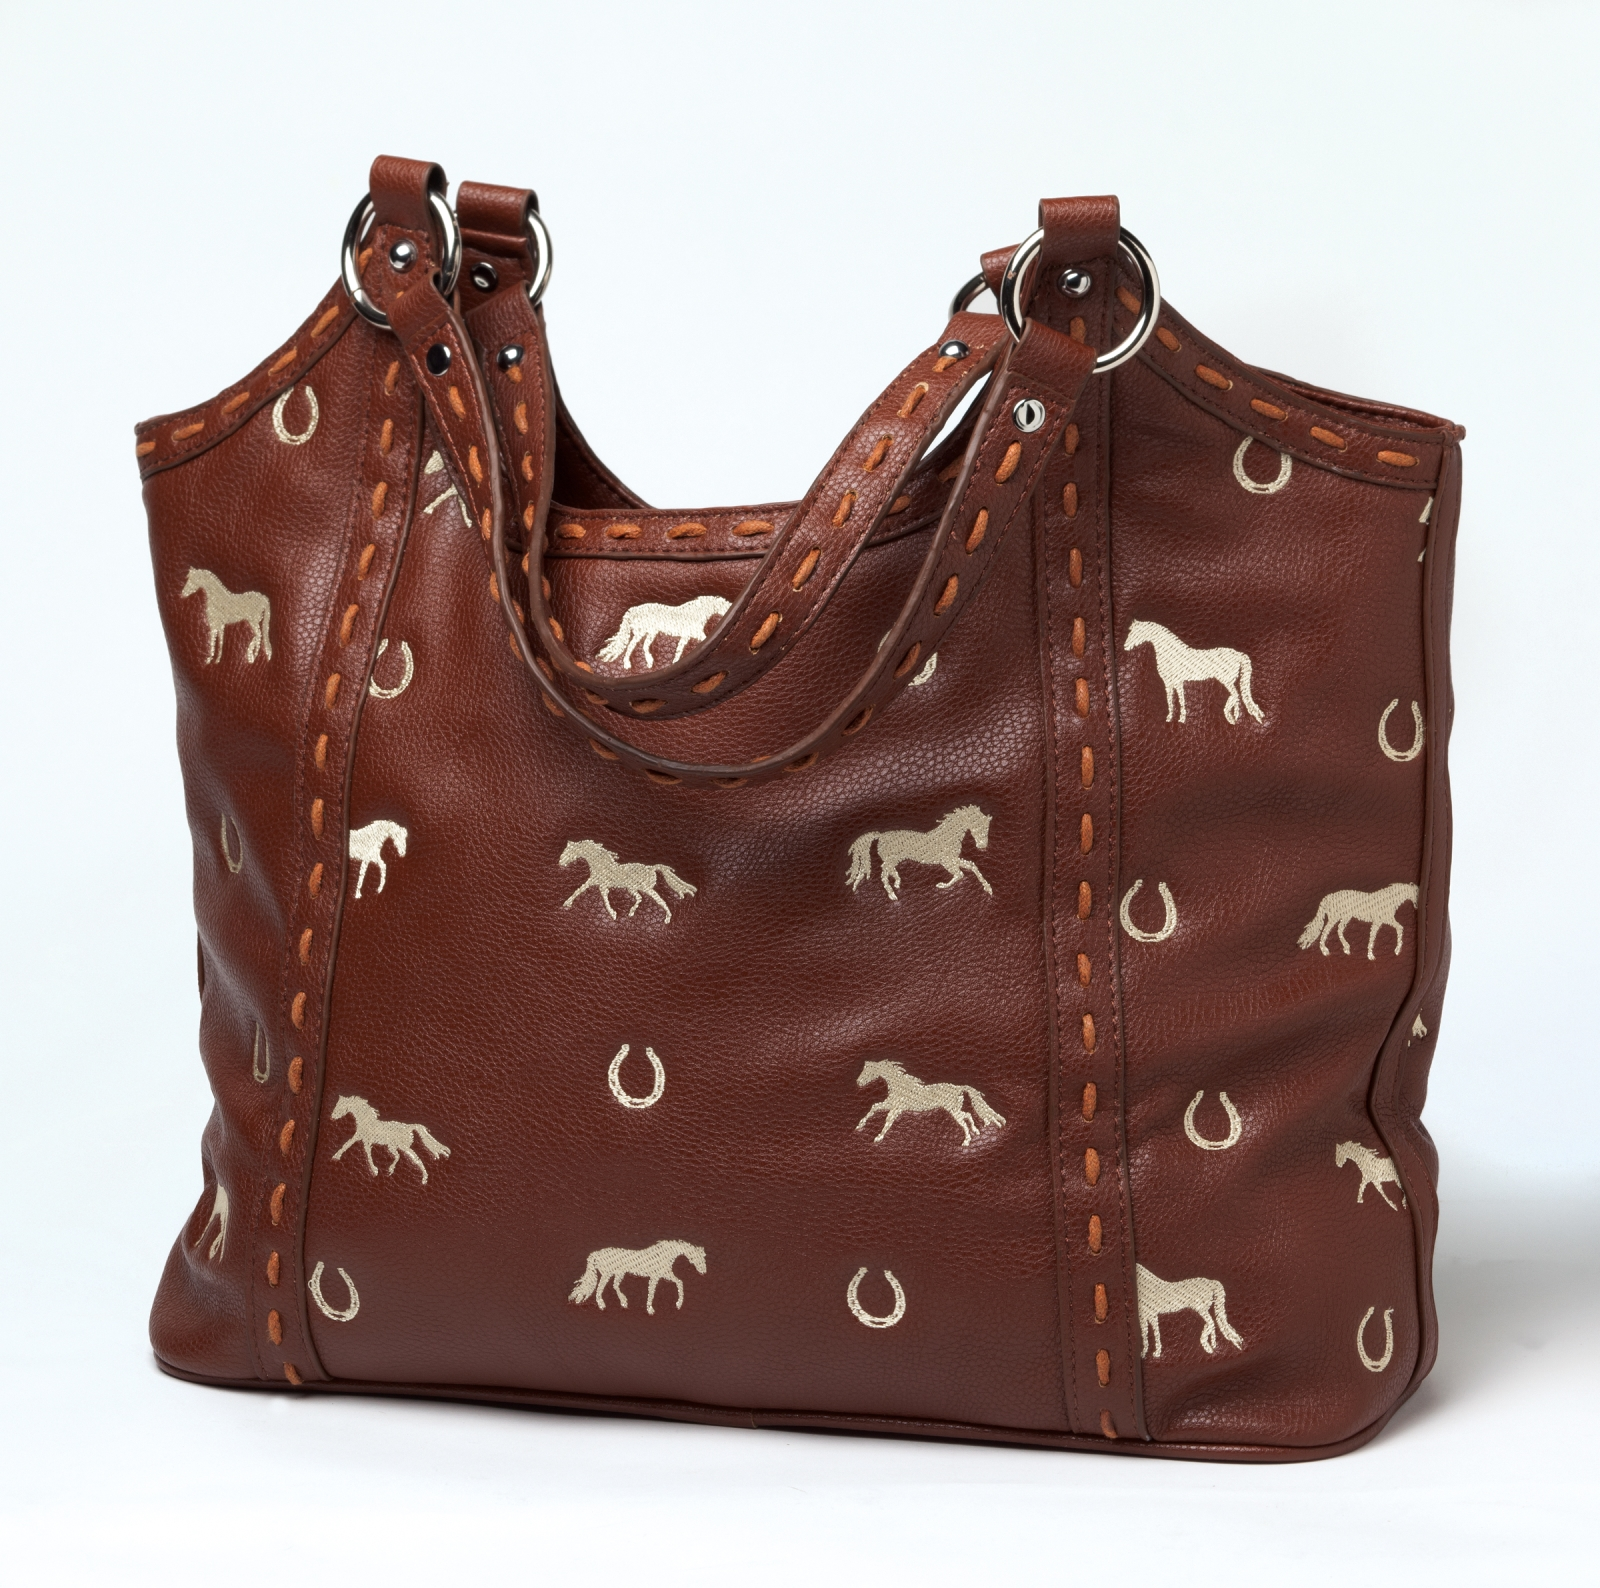 Ladies' Horse and Shoe Handbag